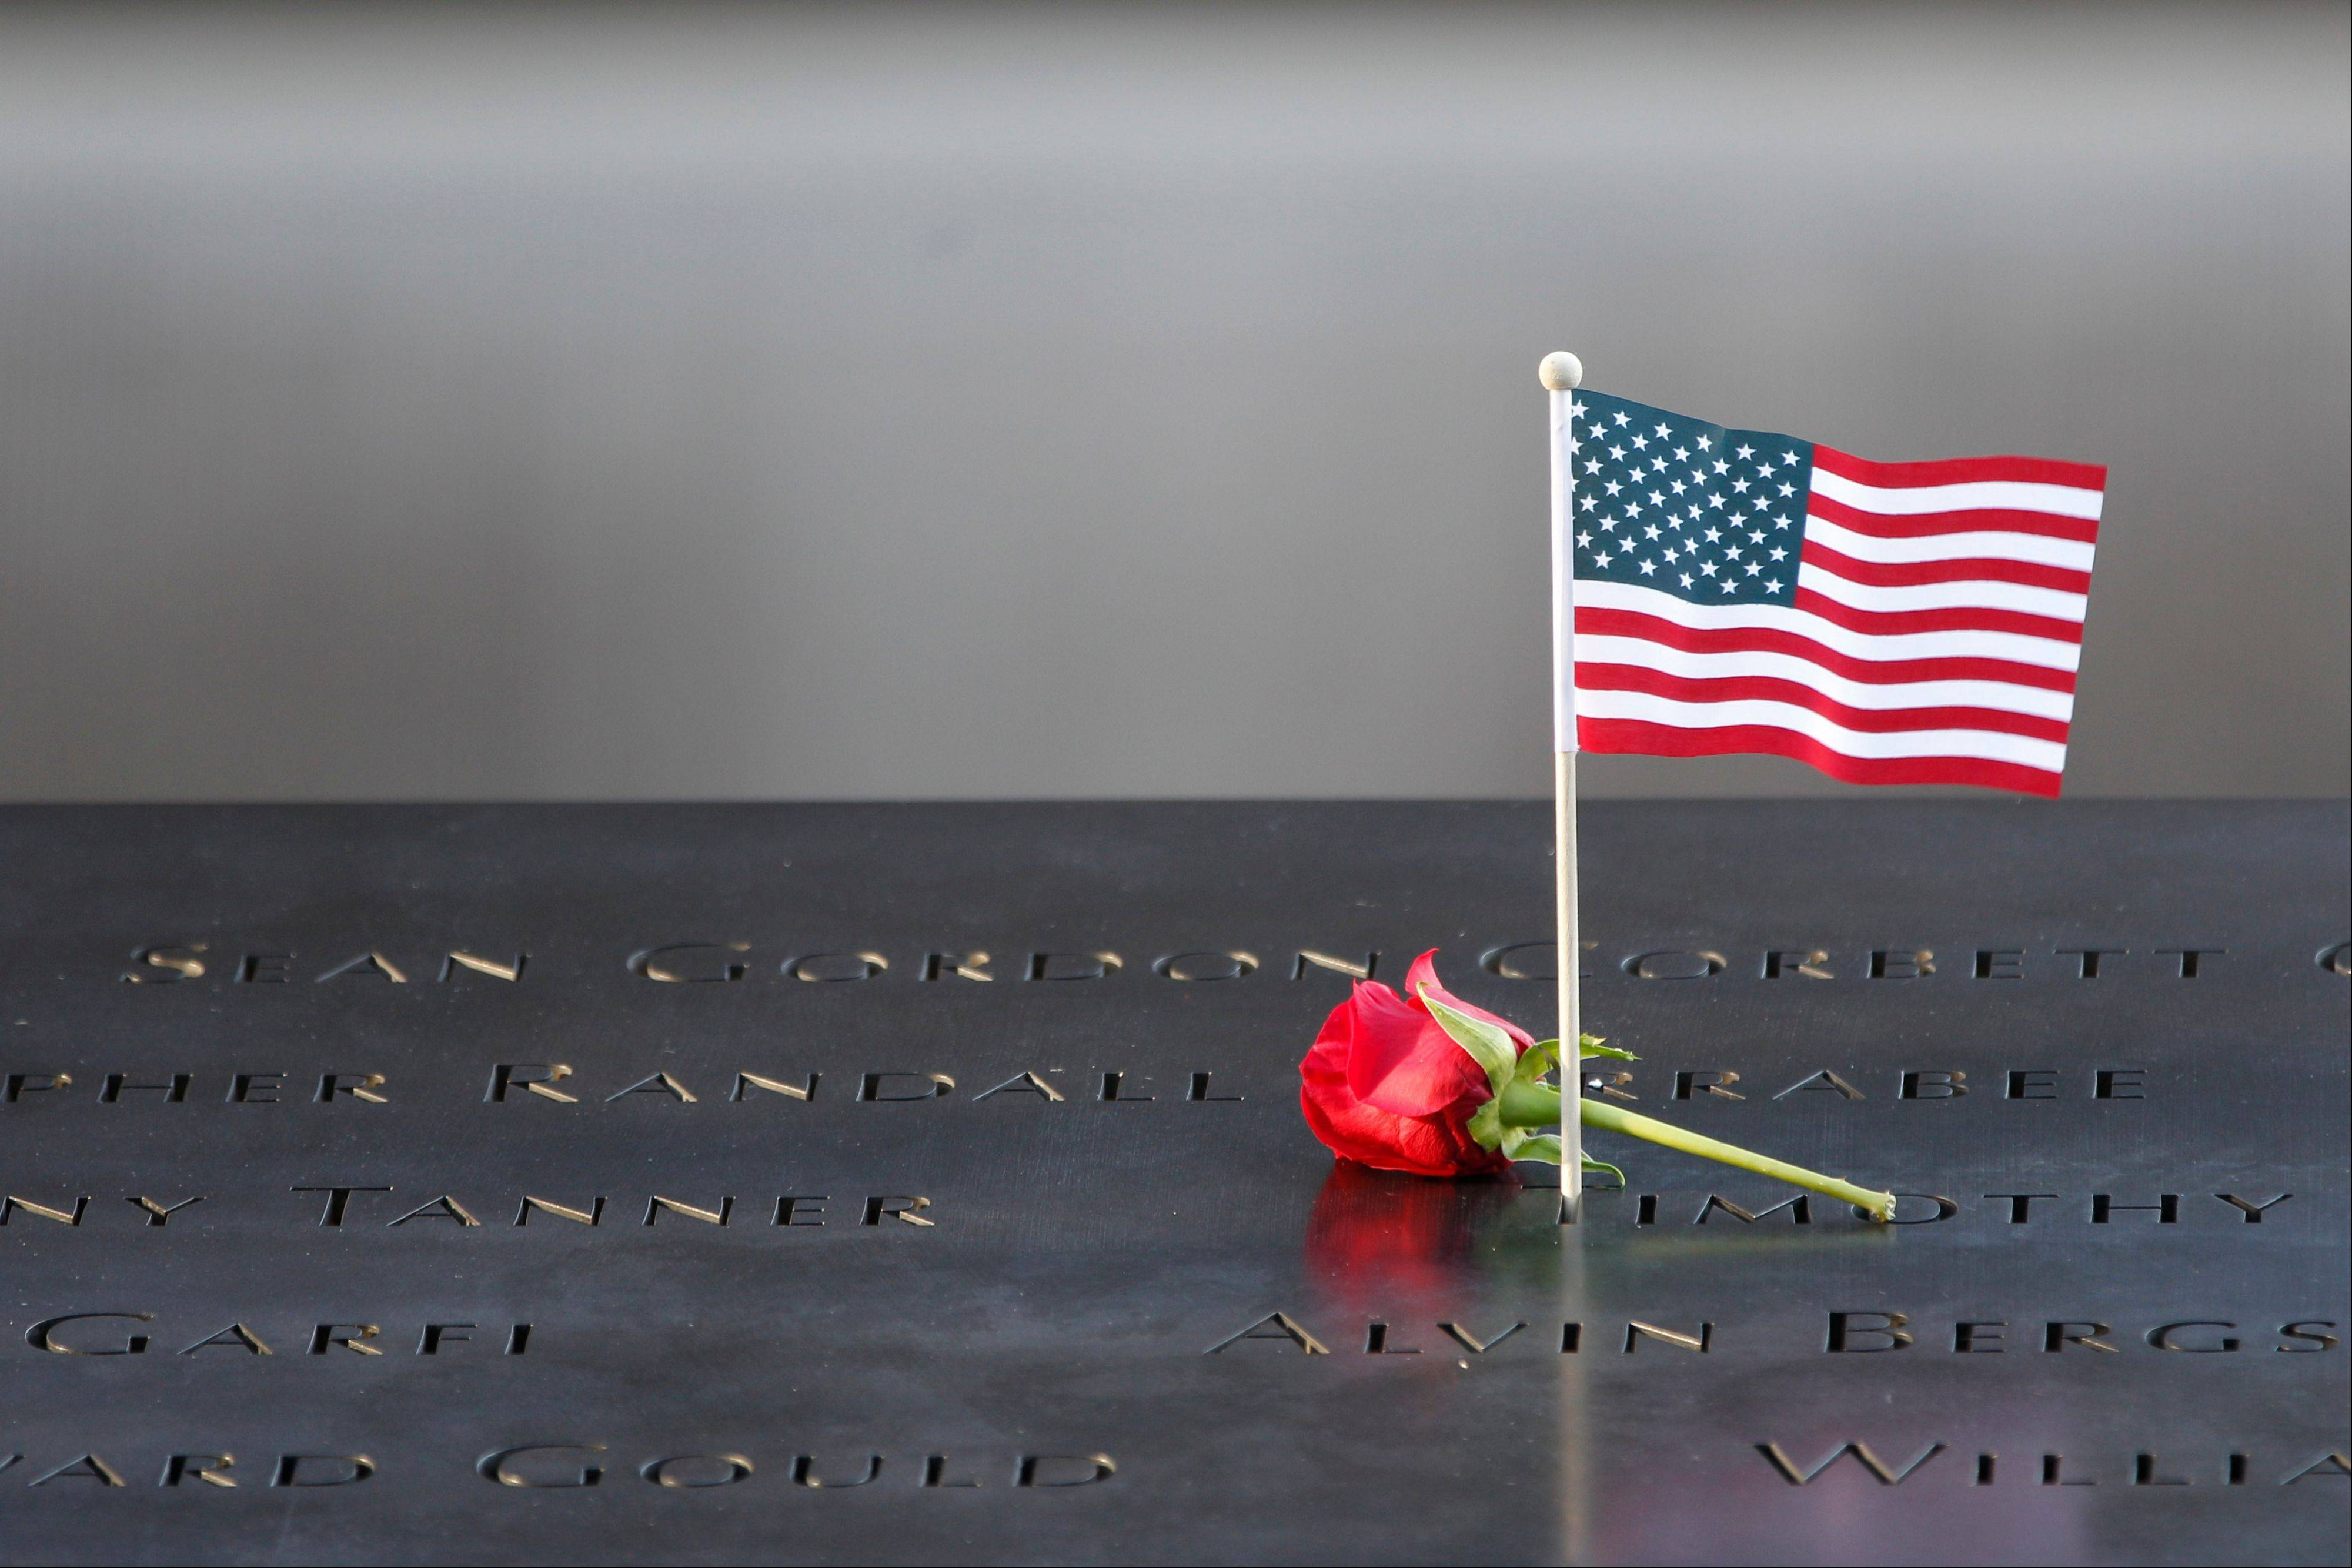 A flower and an American flag are placed next to the names inscribed on the edge of one of the World Trade Center Memorial reflecting pools, during the observance held on the 11th anniversary of the attacks on the World Trade Center, Tuesday, Sept. 11, 2012 in New York.